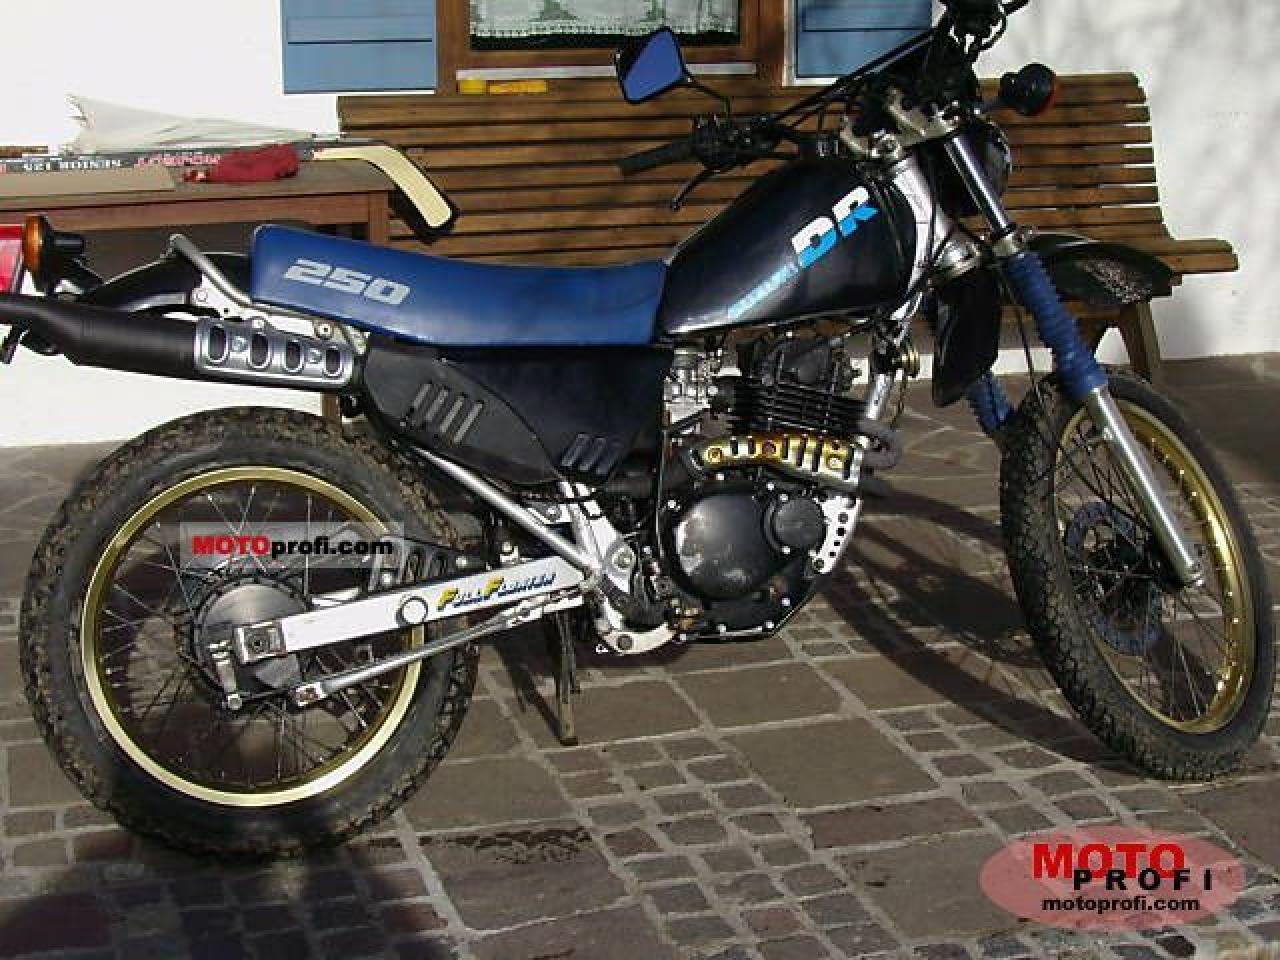 Puch GS 560 F 4 T 1988 images #121596